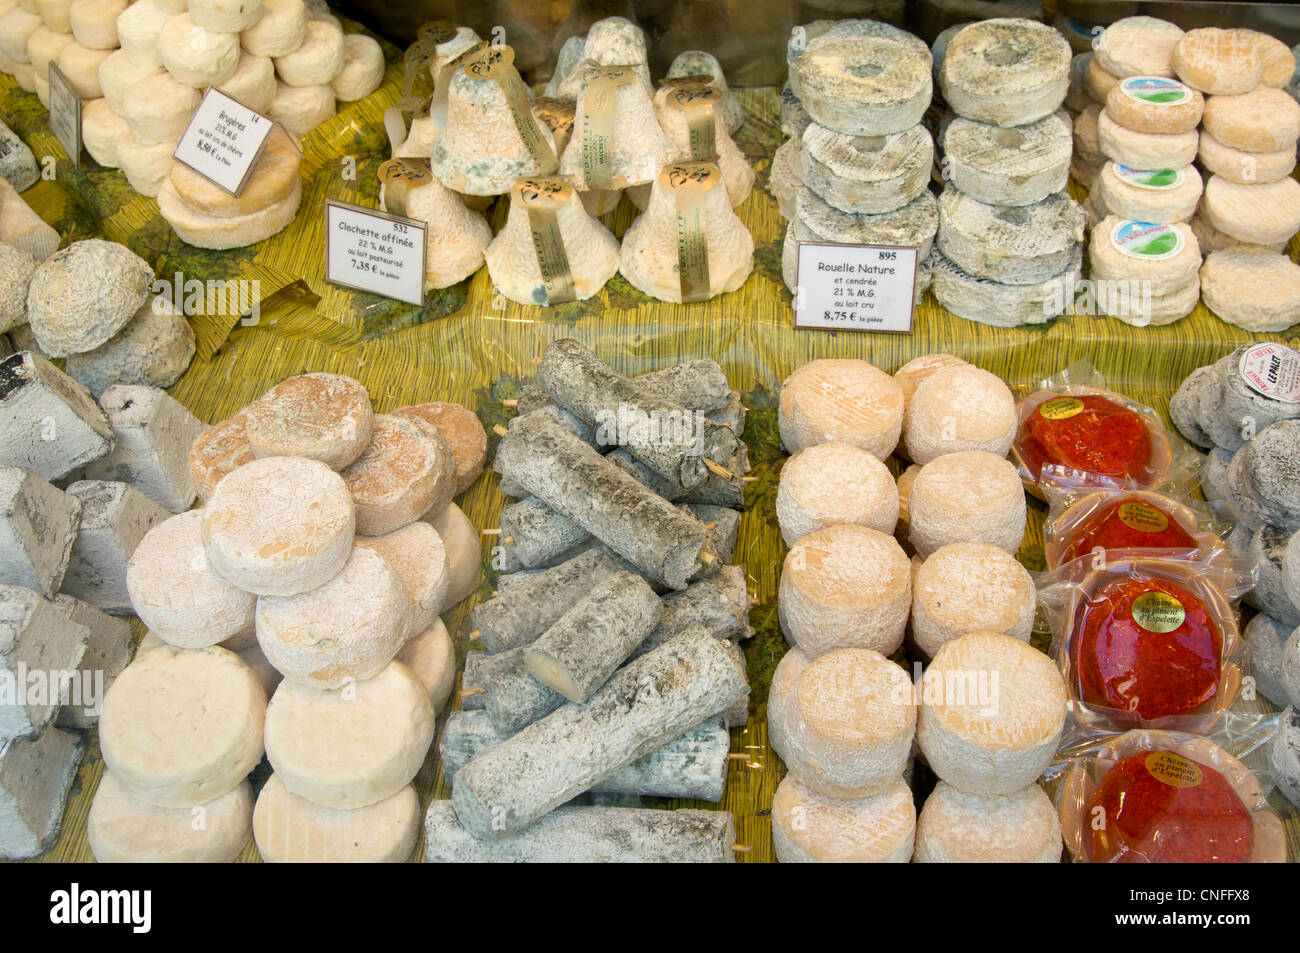 French cheese for sale at the Fromagerie on Rue Cler in Paris, France - Stock Image